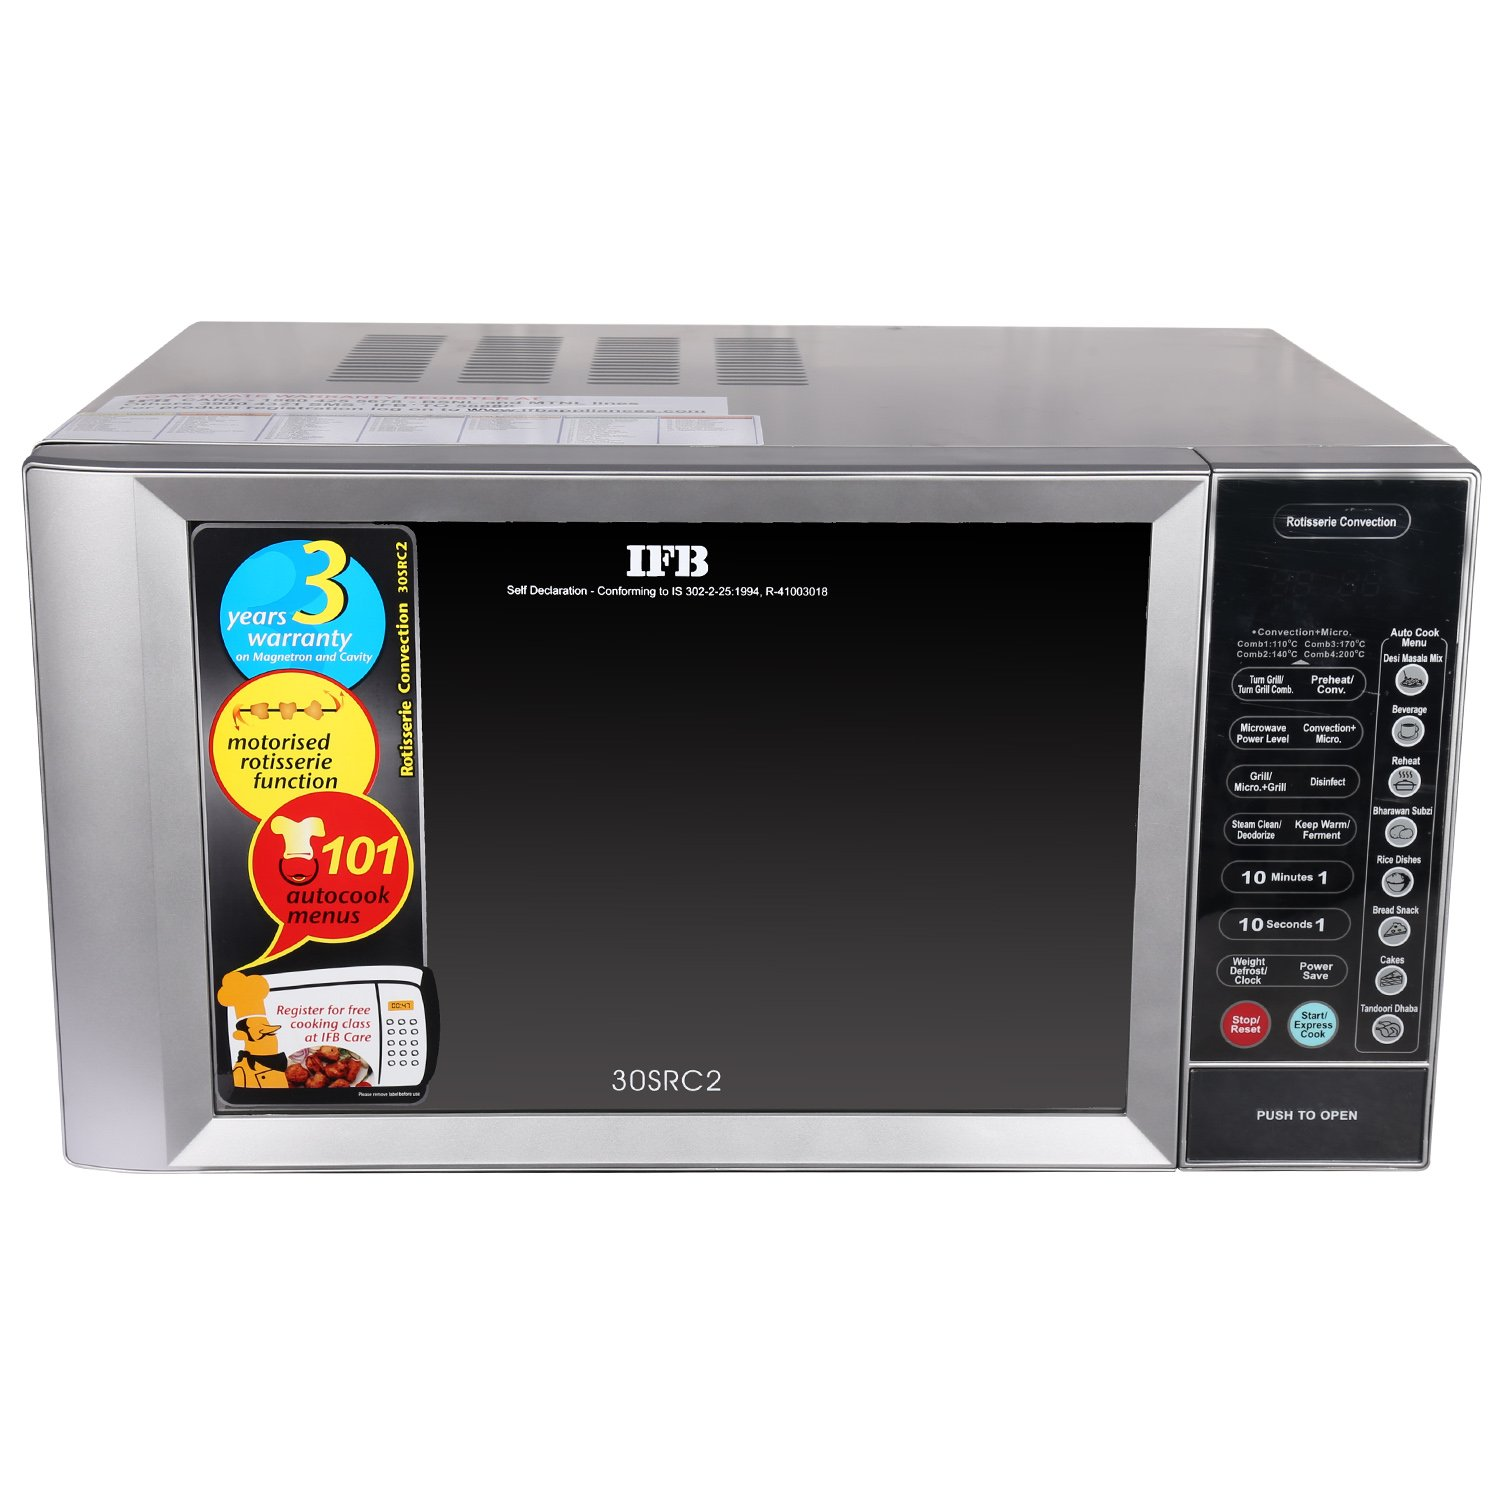 ifb 30 l convection microwave oven 30src2 metallic silver amazon rh amazon in ifb microwave oven user manual ifb microwave oven 25sc2 user manual